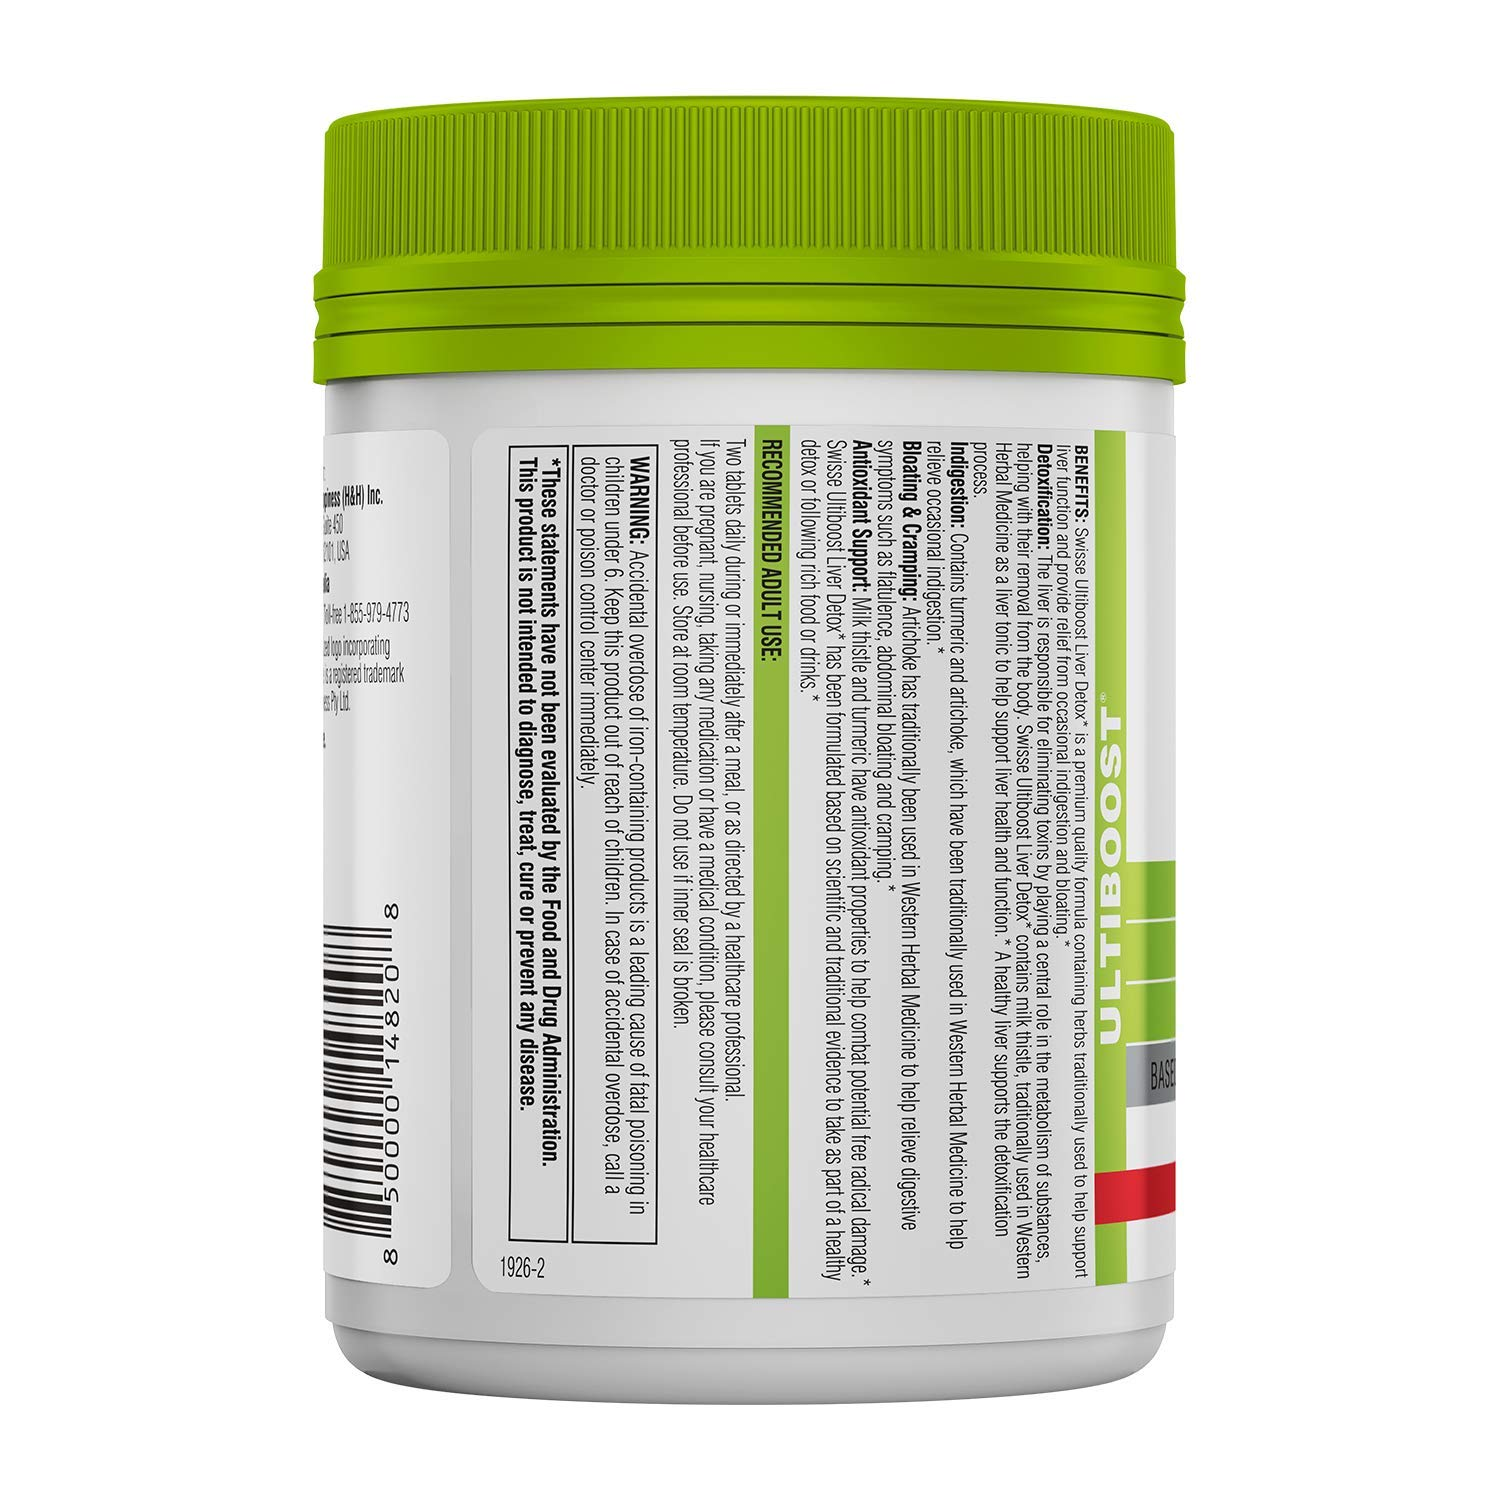 Swisse Ultiboost Liver Detox | Supports Liver Health & Function | Provides Relief for Indigestion & Bloating | Milk Thistle, Artichoke & Tumeric | 180 Tablets by Swisse (Image #2)